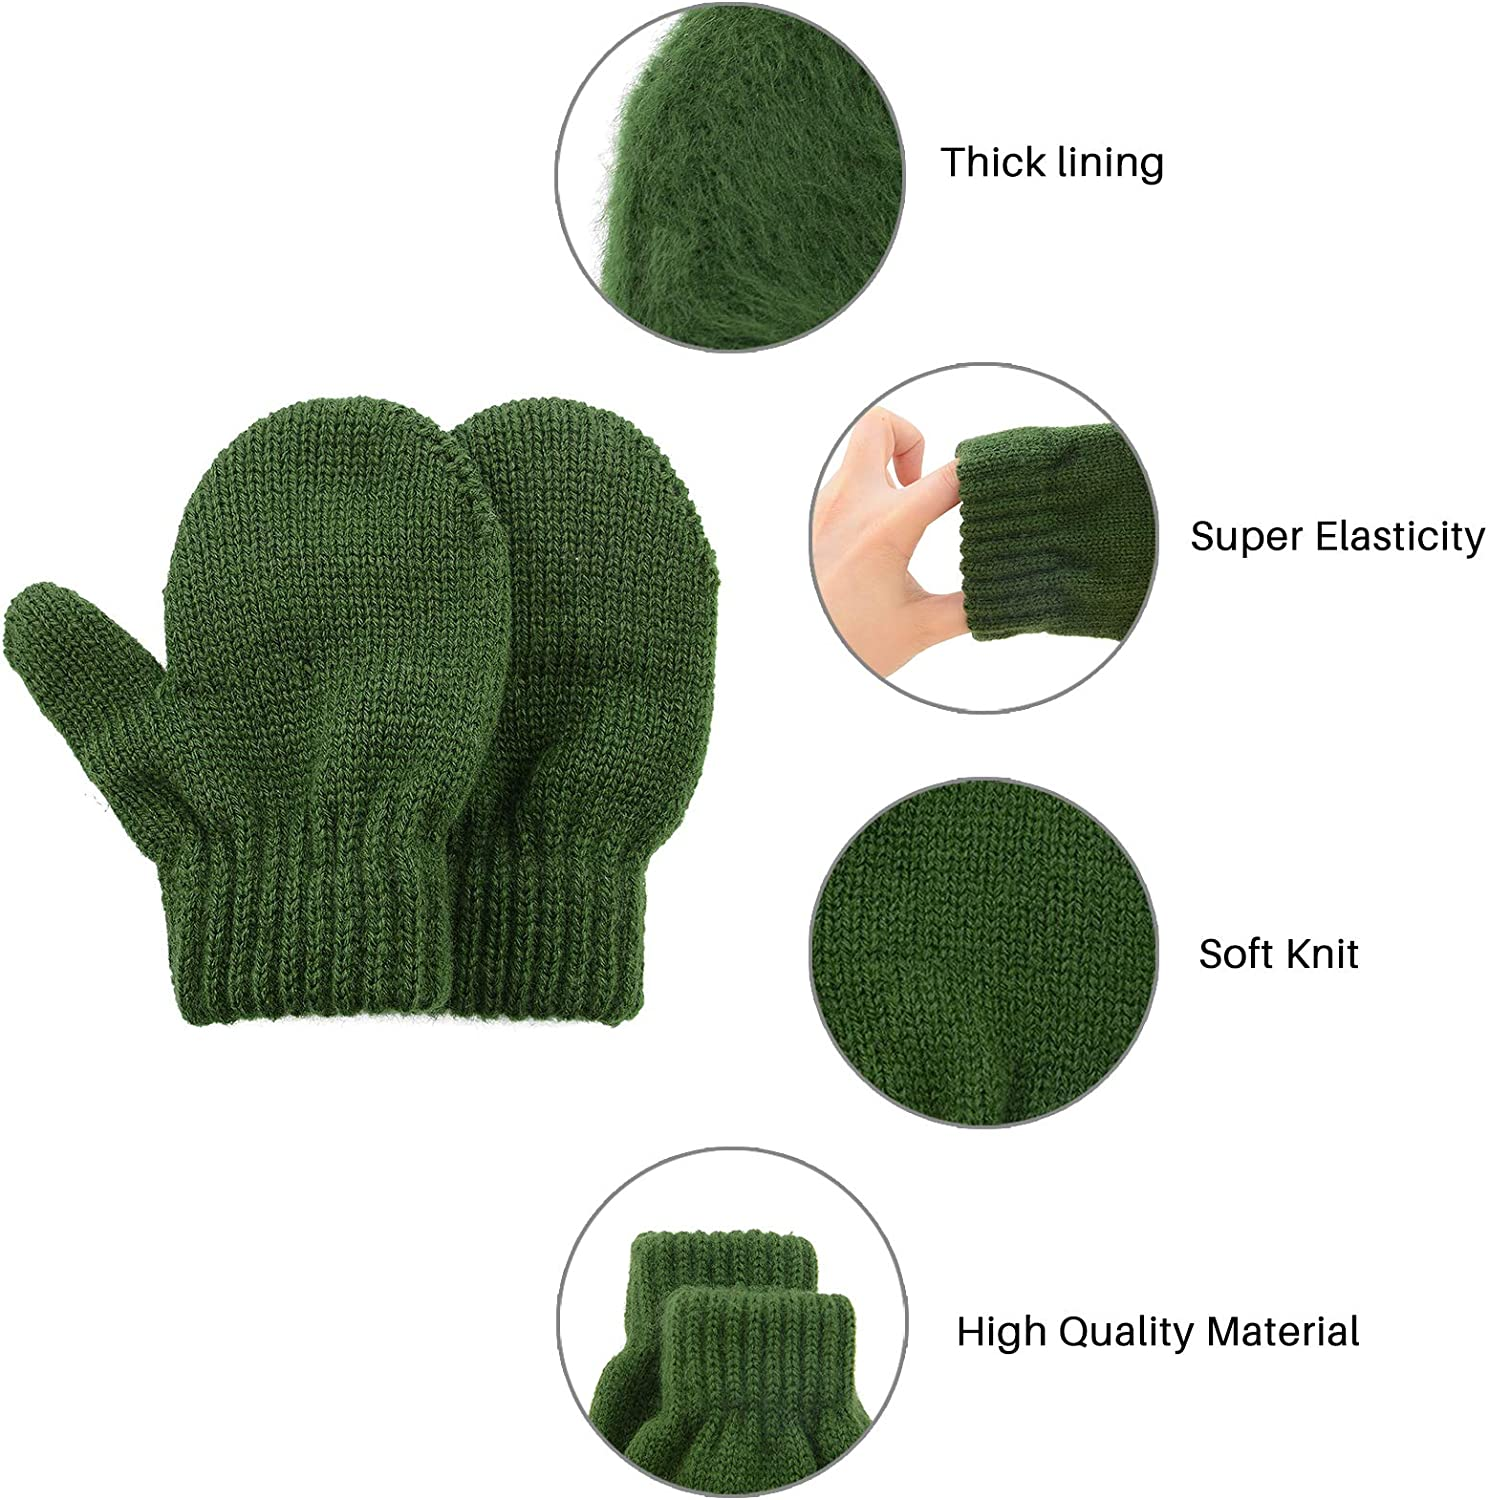 Kids Winter Toddler Mittens Multicolor Soft Knitted Gloves Thick Cold Protection Mitten Color Set 4